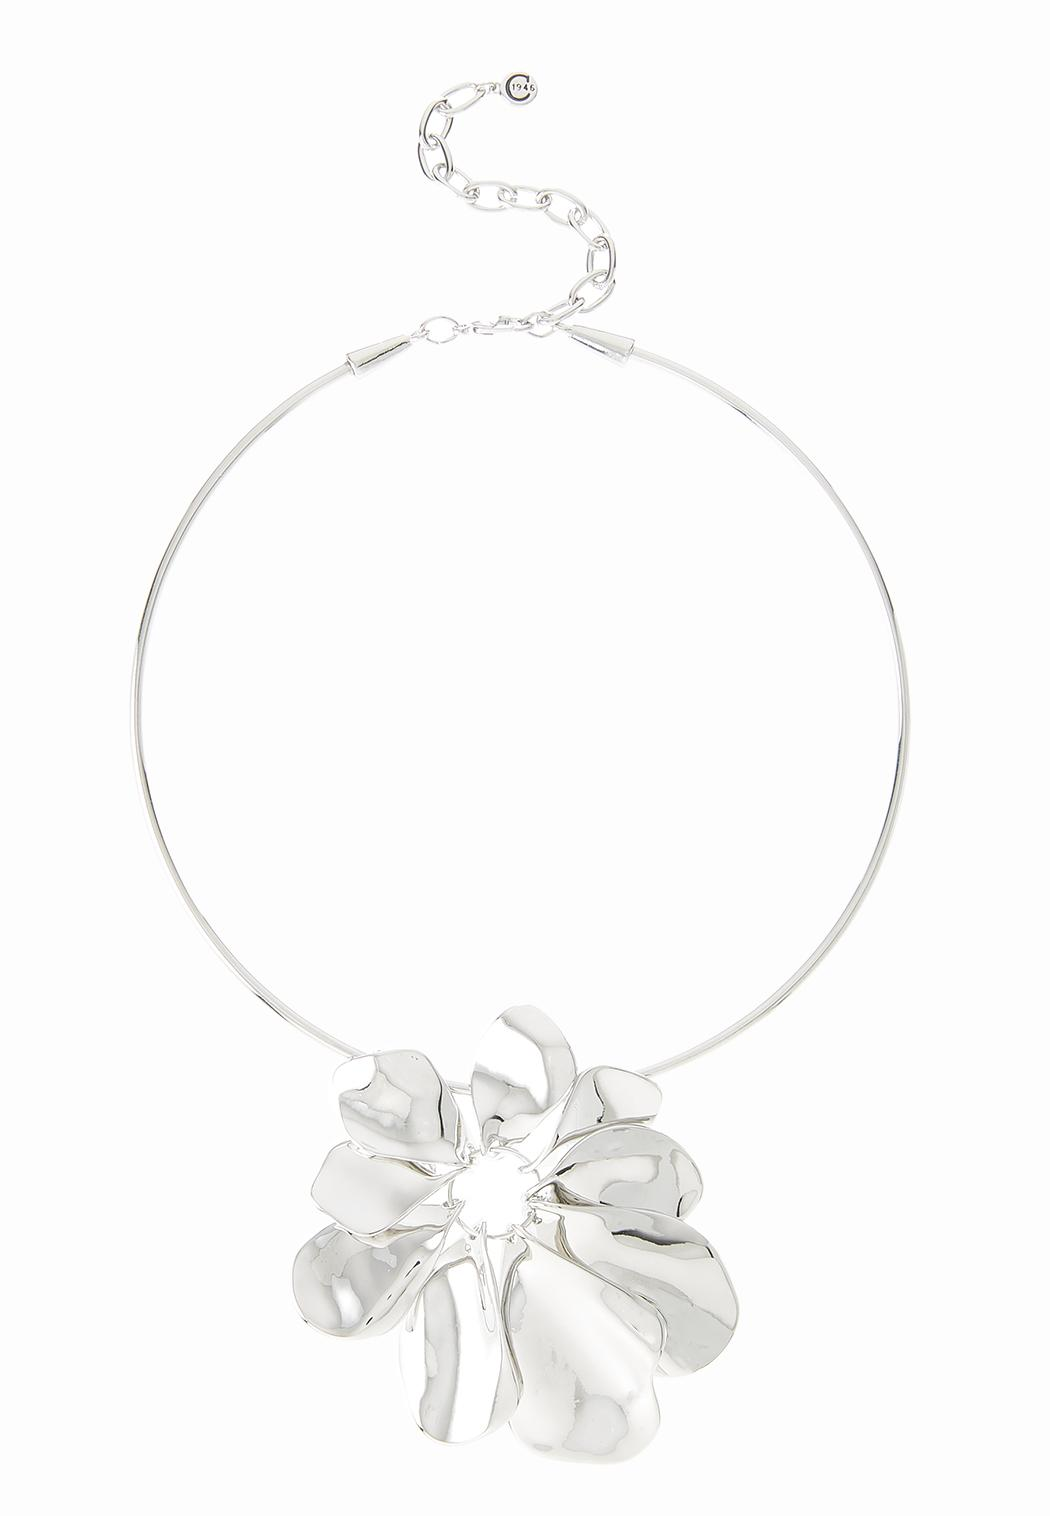 Metal Flower Wire Necklace